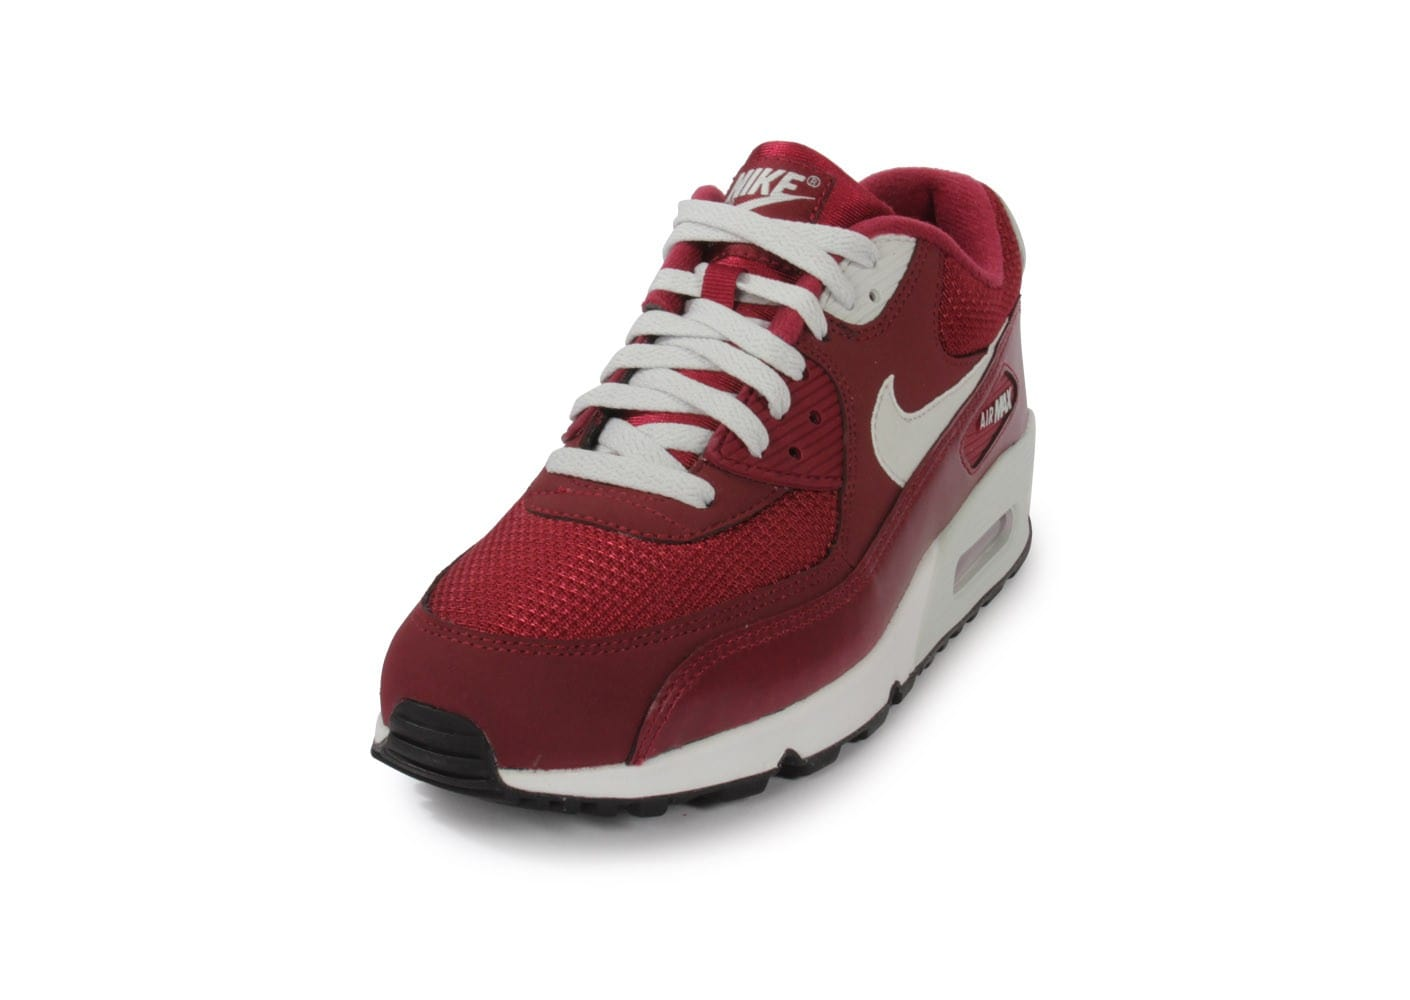 Wnyom0v8n Essential Bordeaux Nike Baskets Chaussures Homme 90 Max Air j54ScARL3q